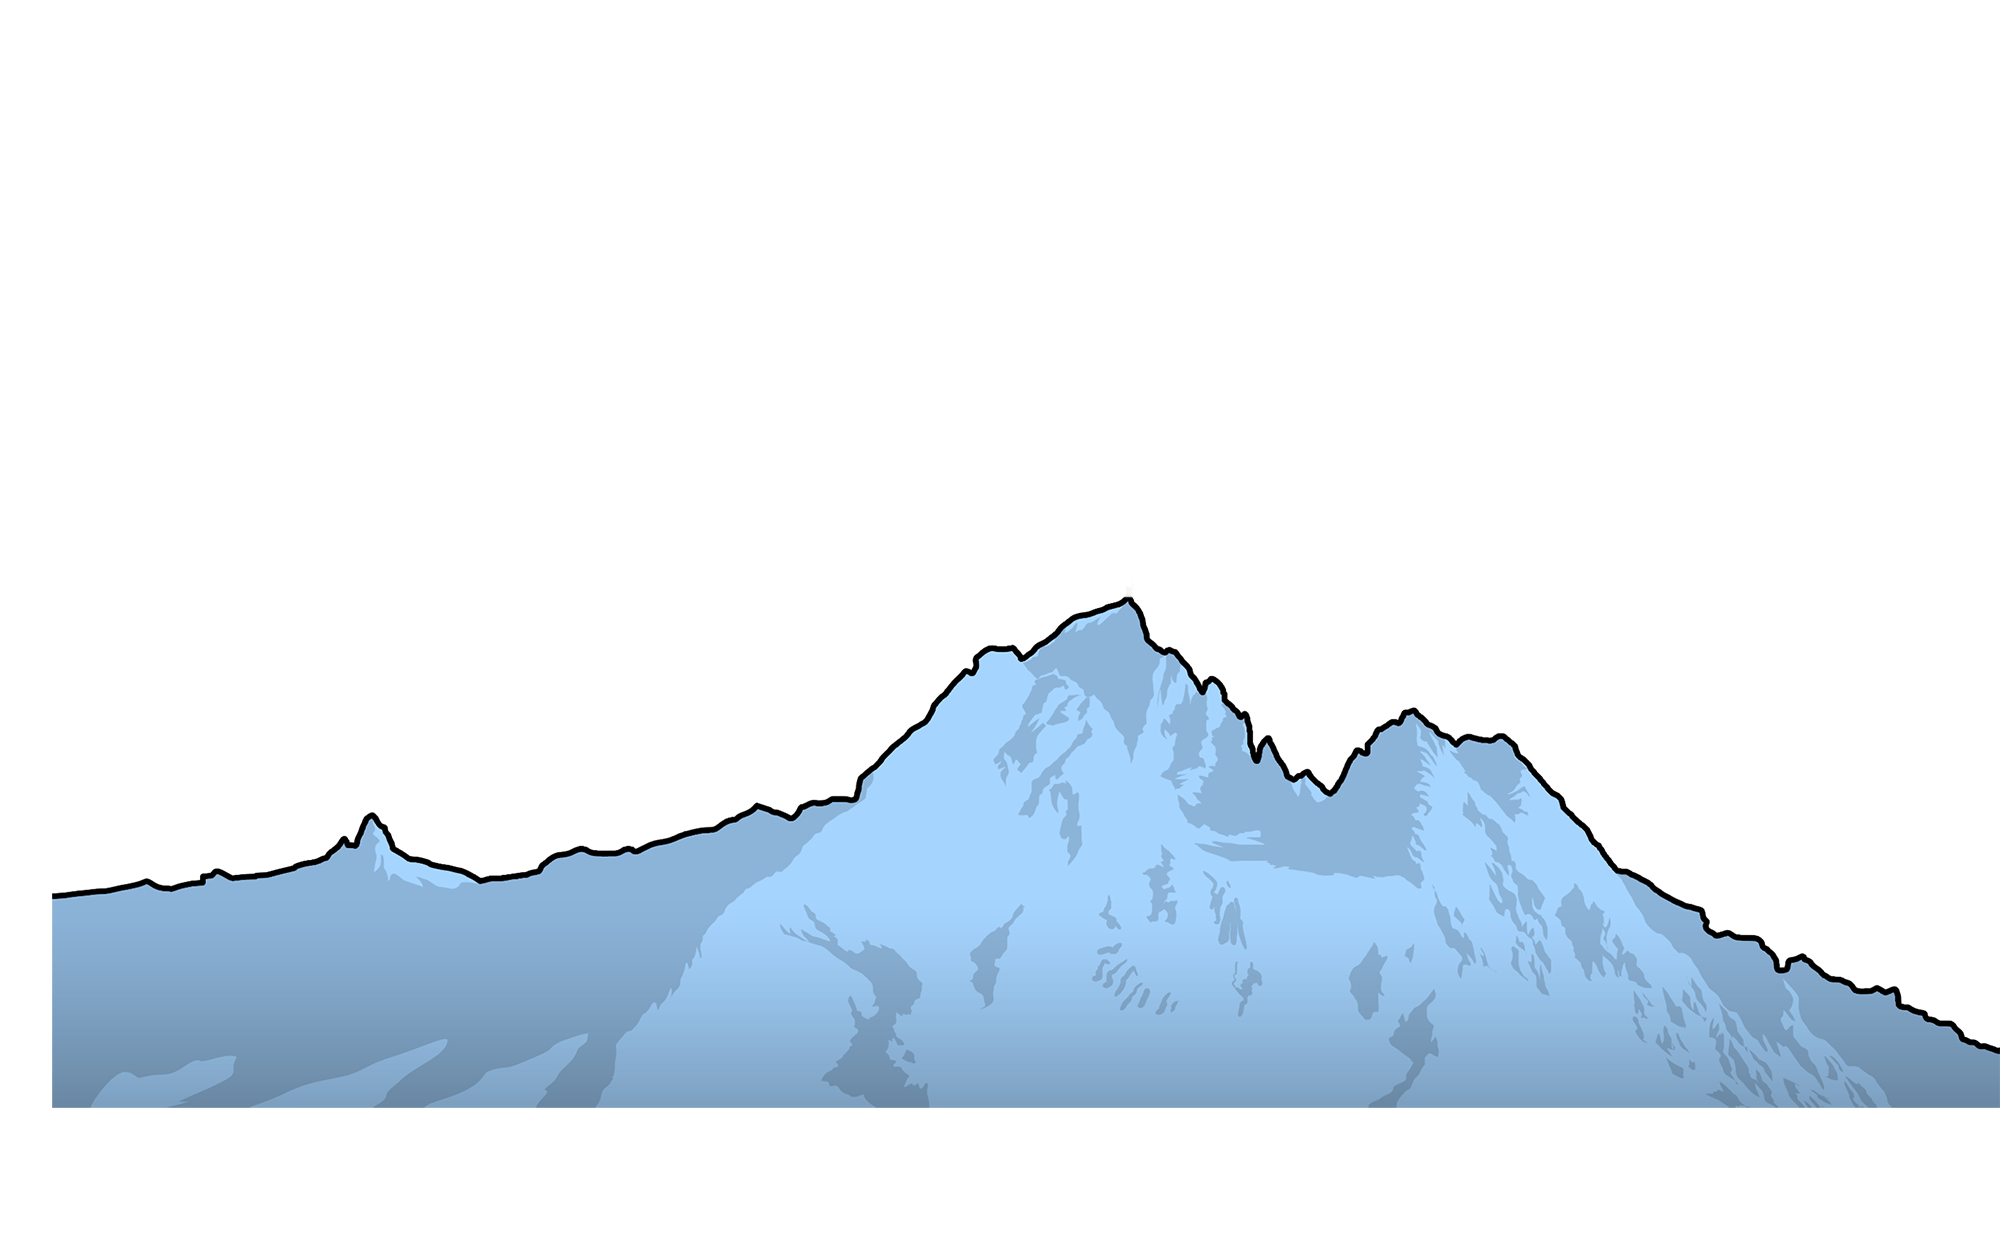 clipart mountain everest